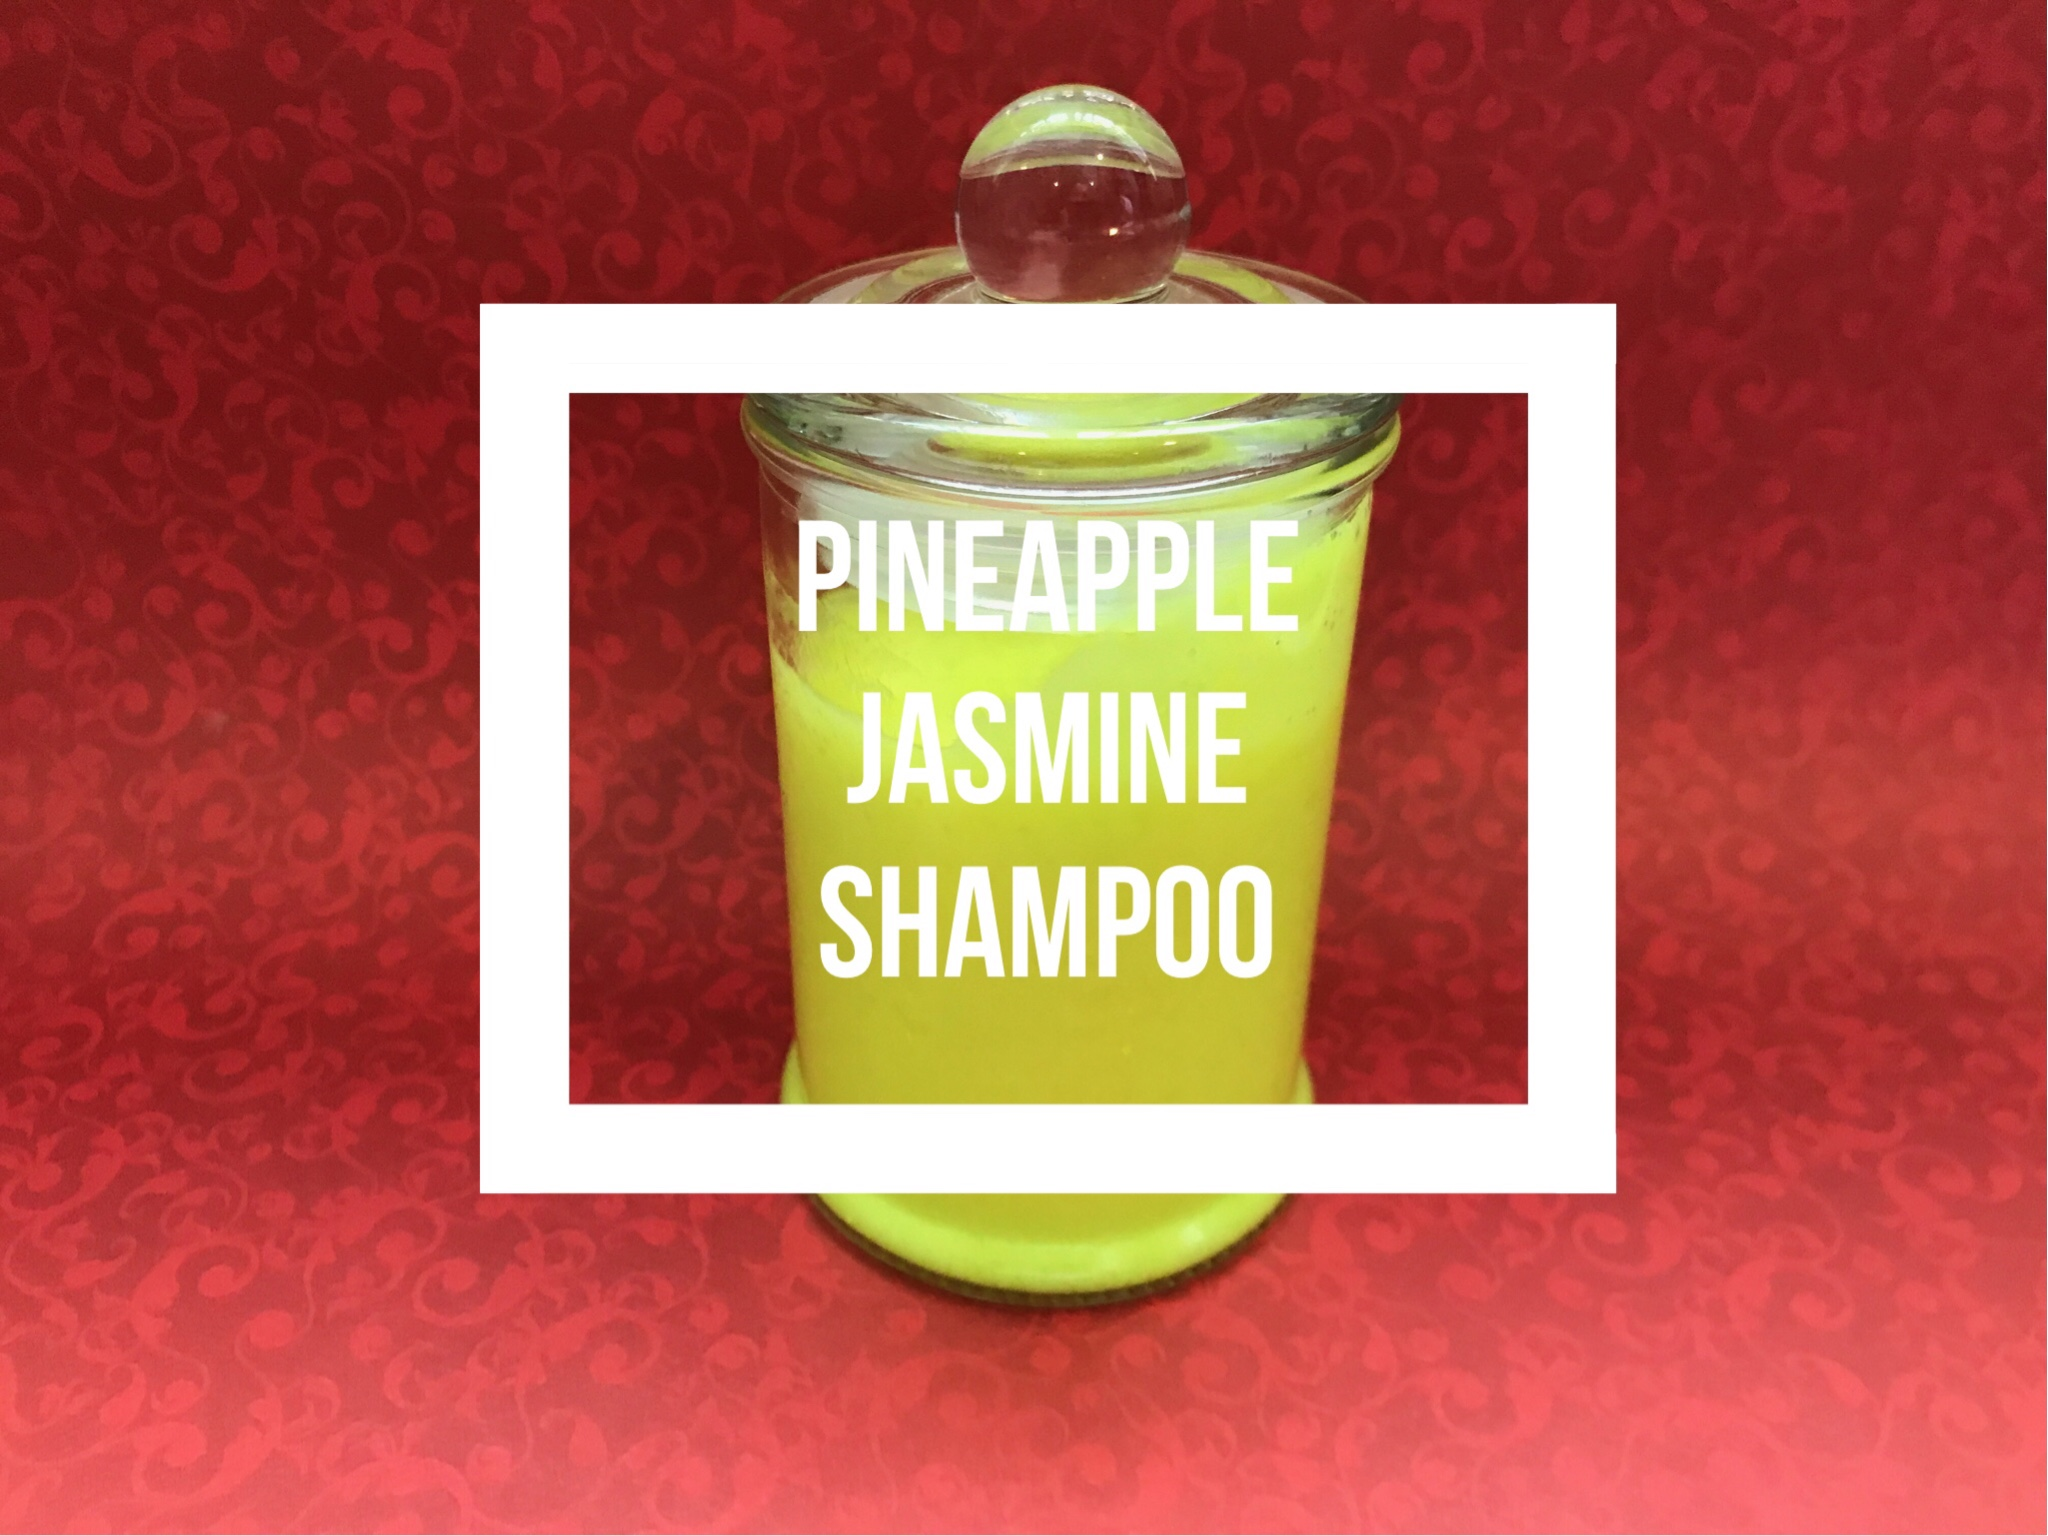 SoapLab Malaysia: How To Make: Pineapple Jasmine Shampoo